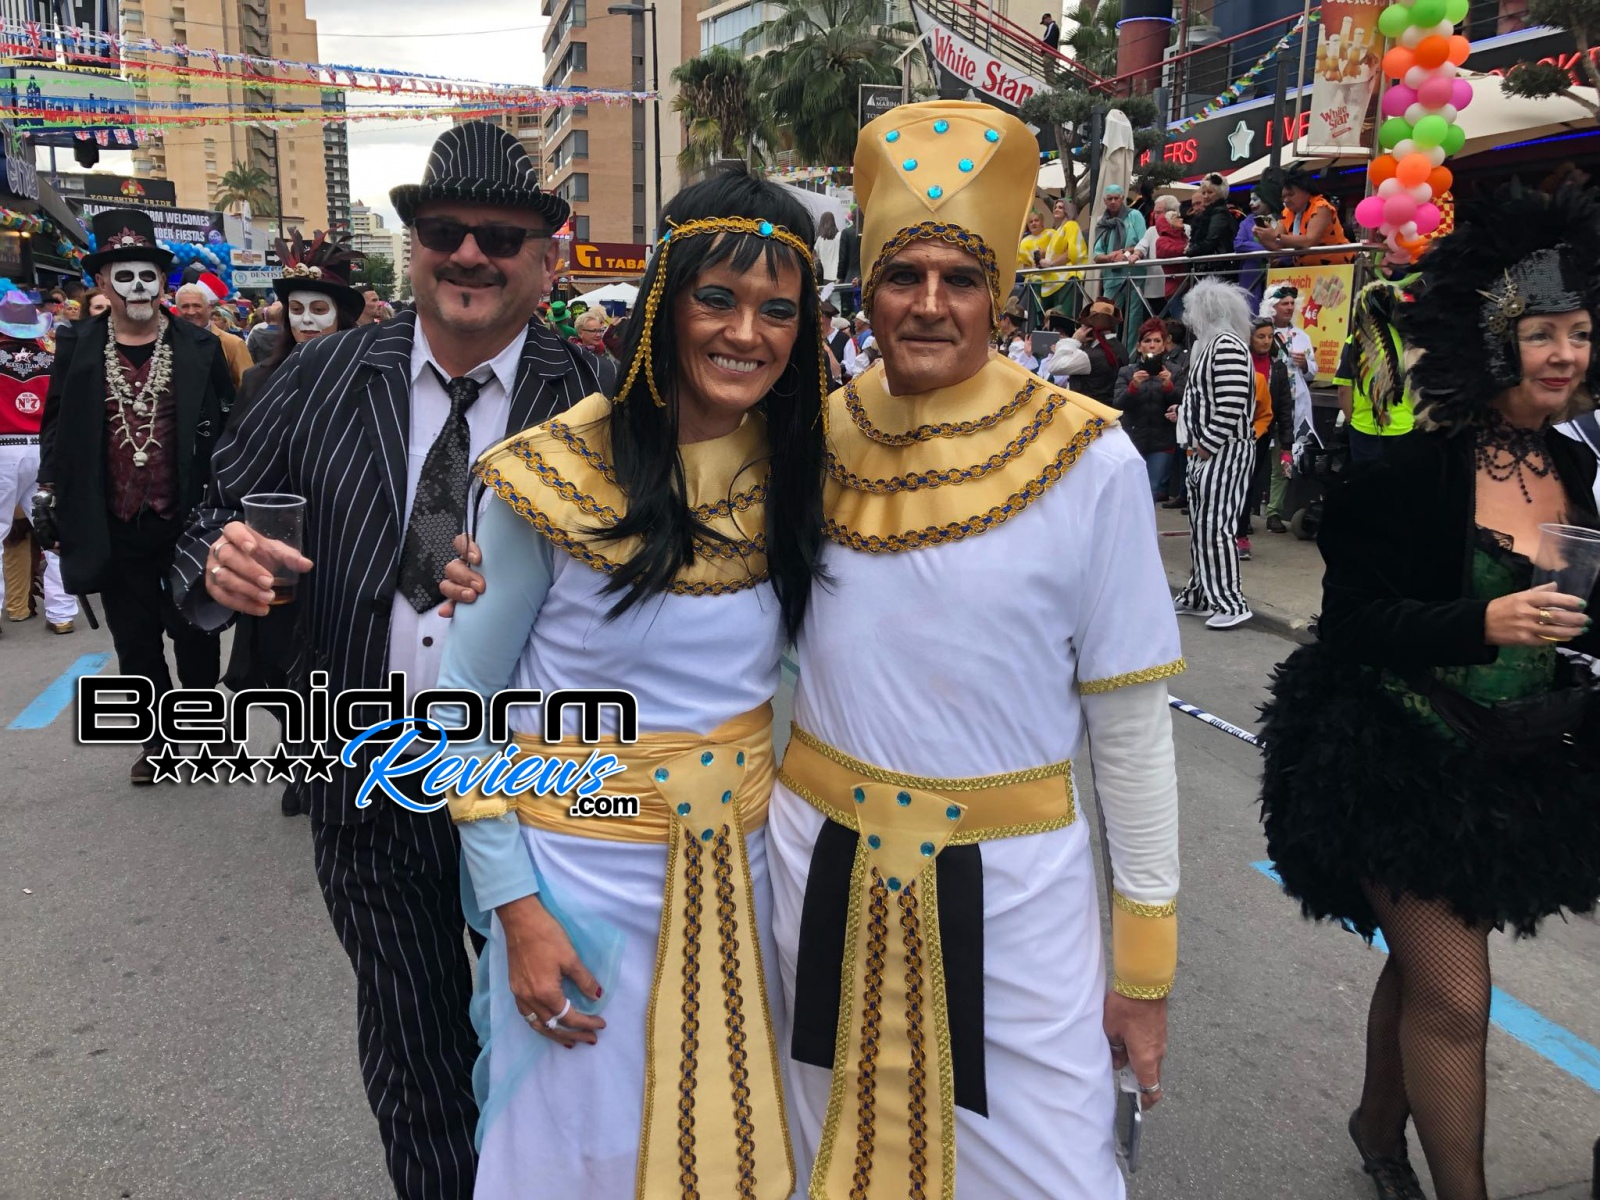 Benidorm-Fiestas-2019-Fancy-Dress-248